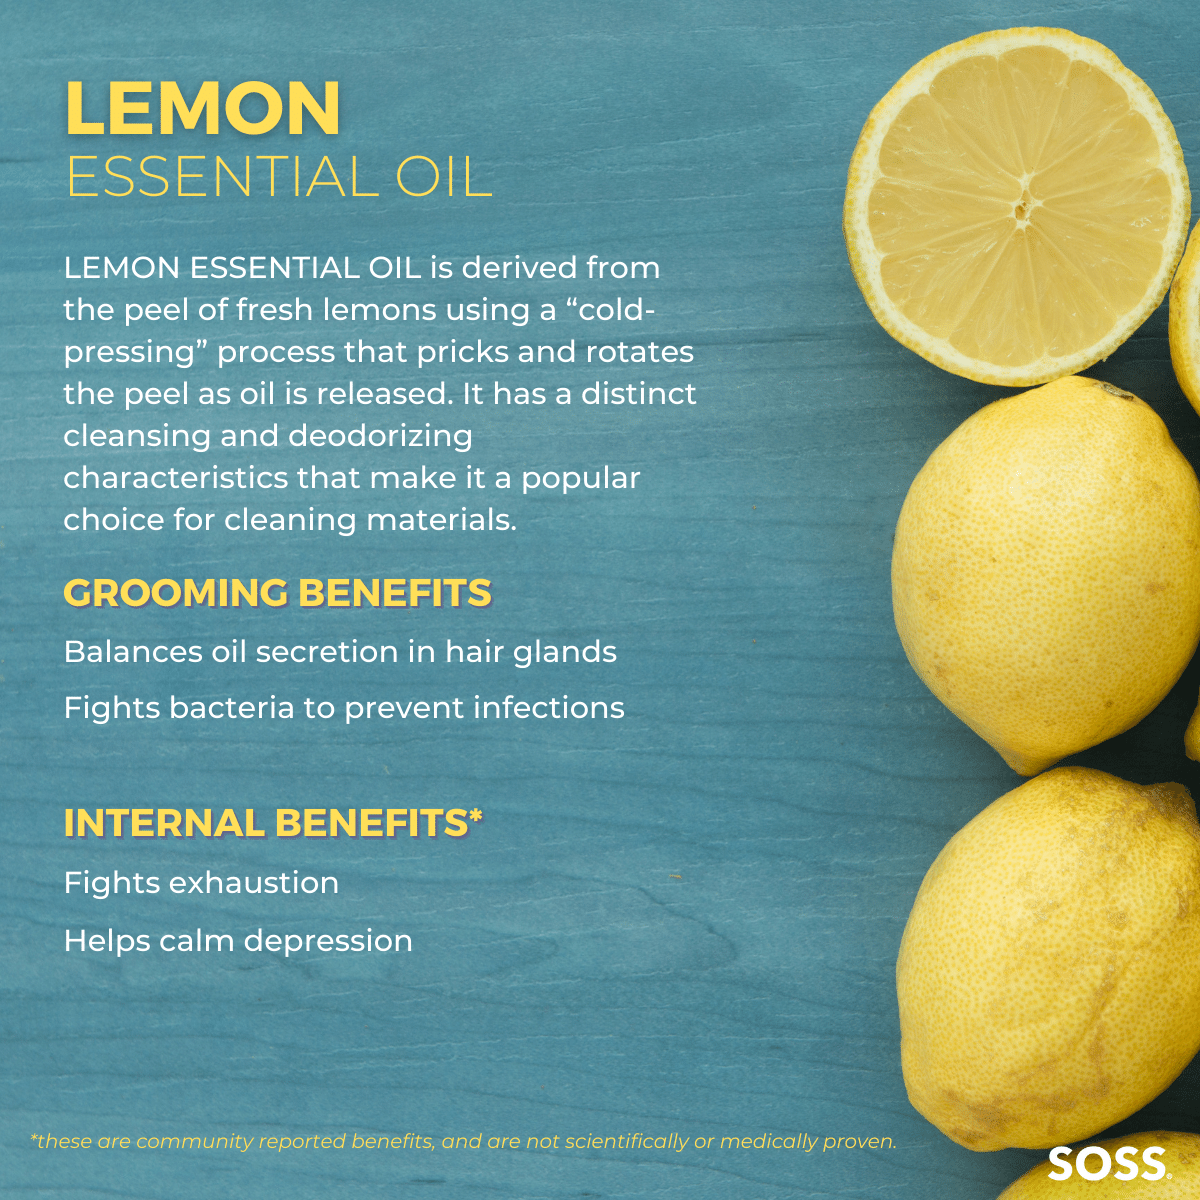 Lemon Essential Oil balances oil and prevents infections for oily hair and acne prone scalps.